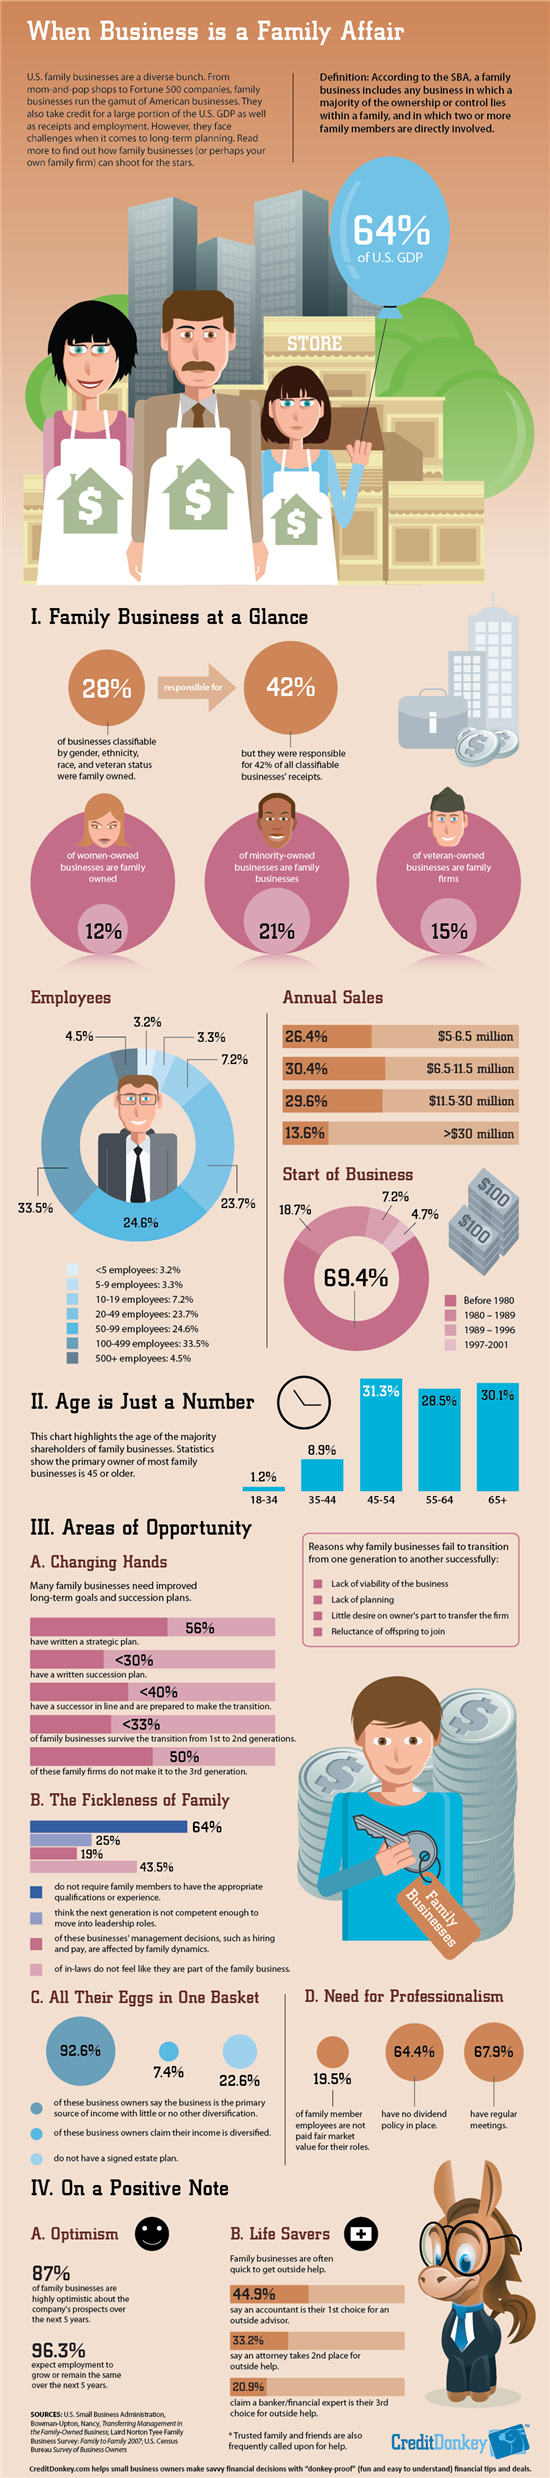 Infographic: Family Business